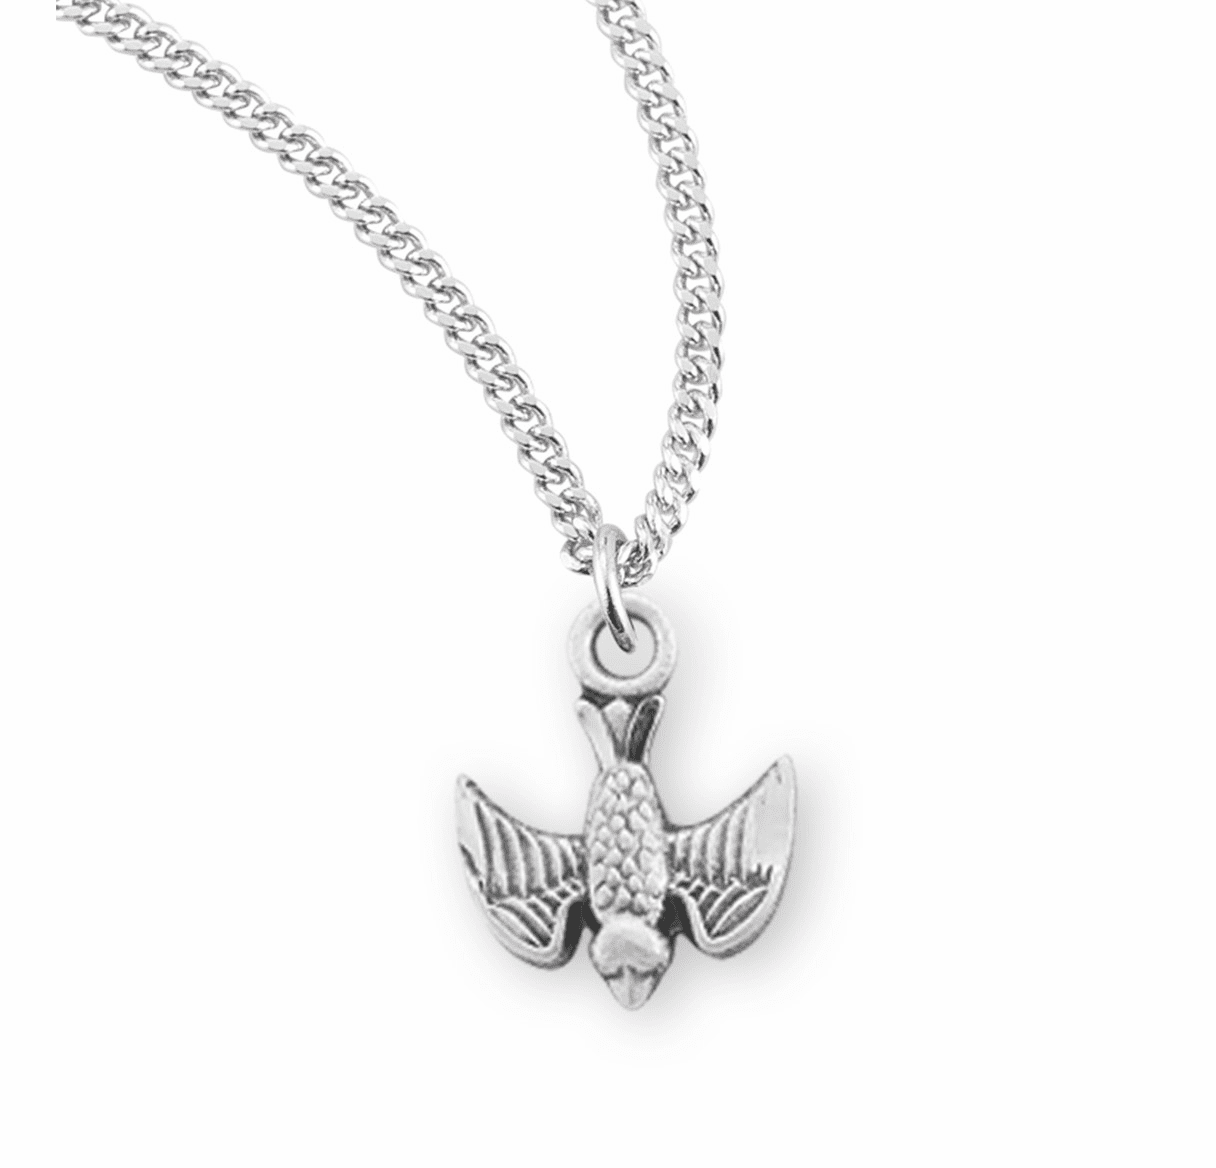 Tiny Sterling Silver Holy Spirit Medal Necklace by HMH Religious